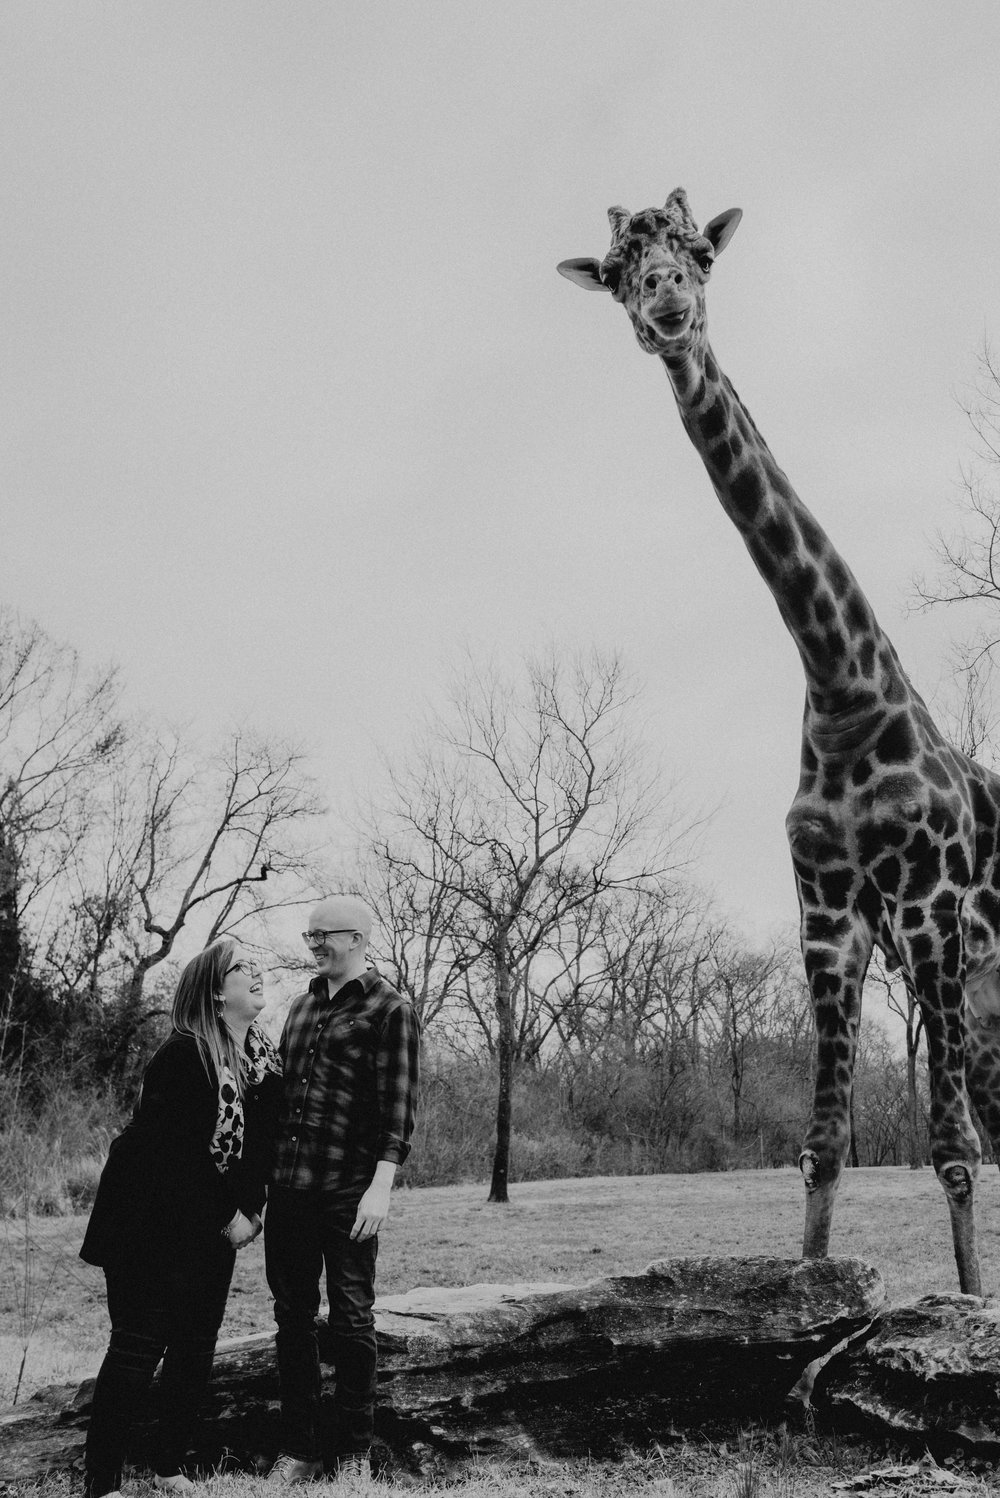 emily and daniel nashville zoo engagement session wilde company-7777.jpg